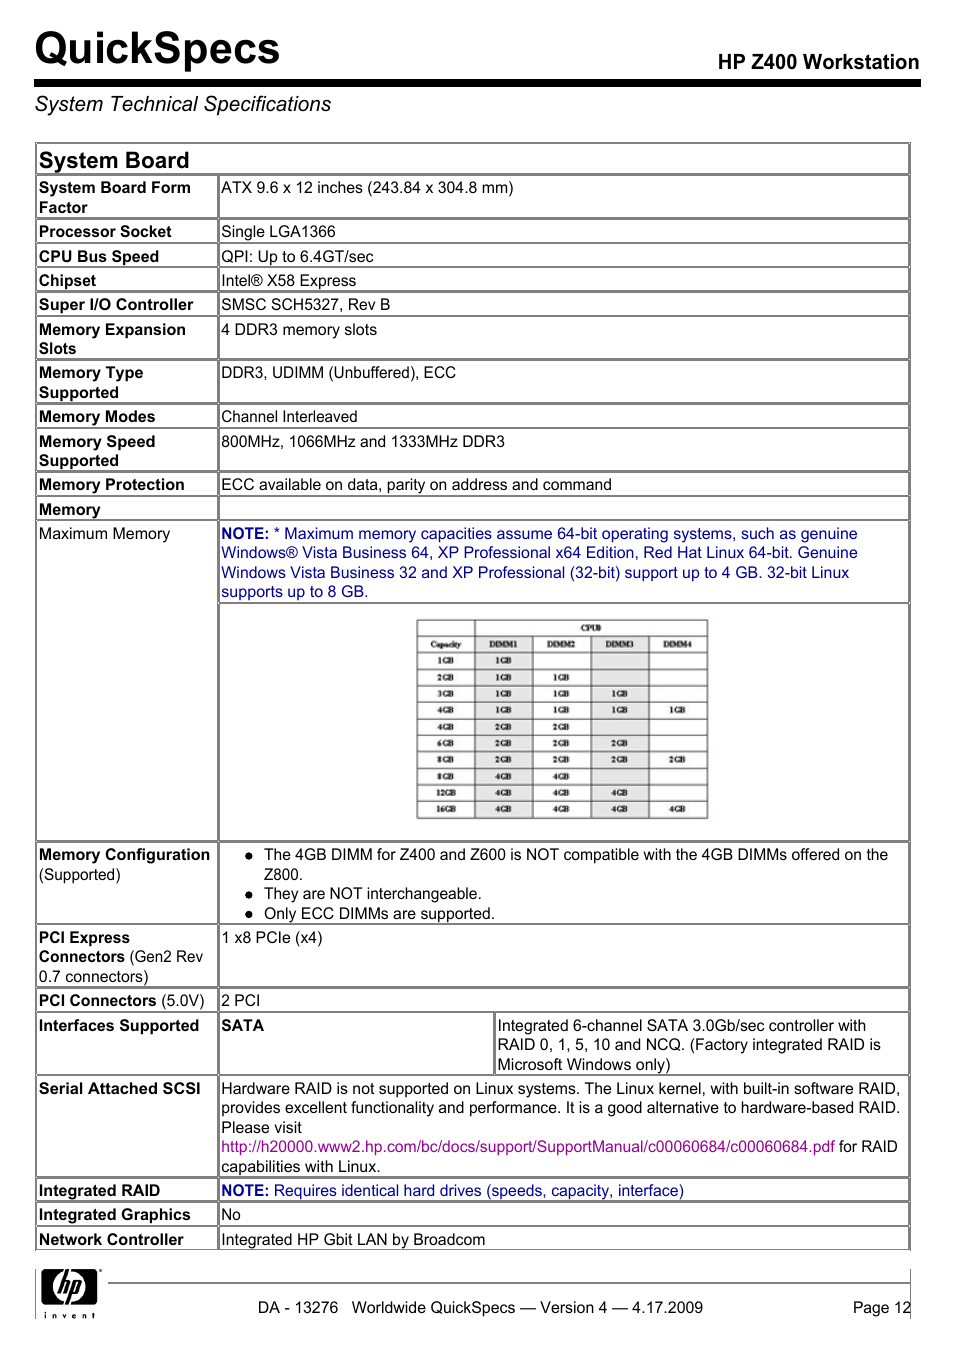 System technical specifications, Quickspecs, System board